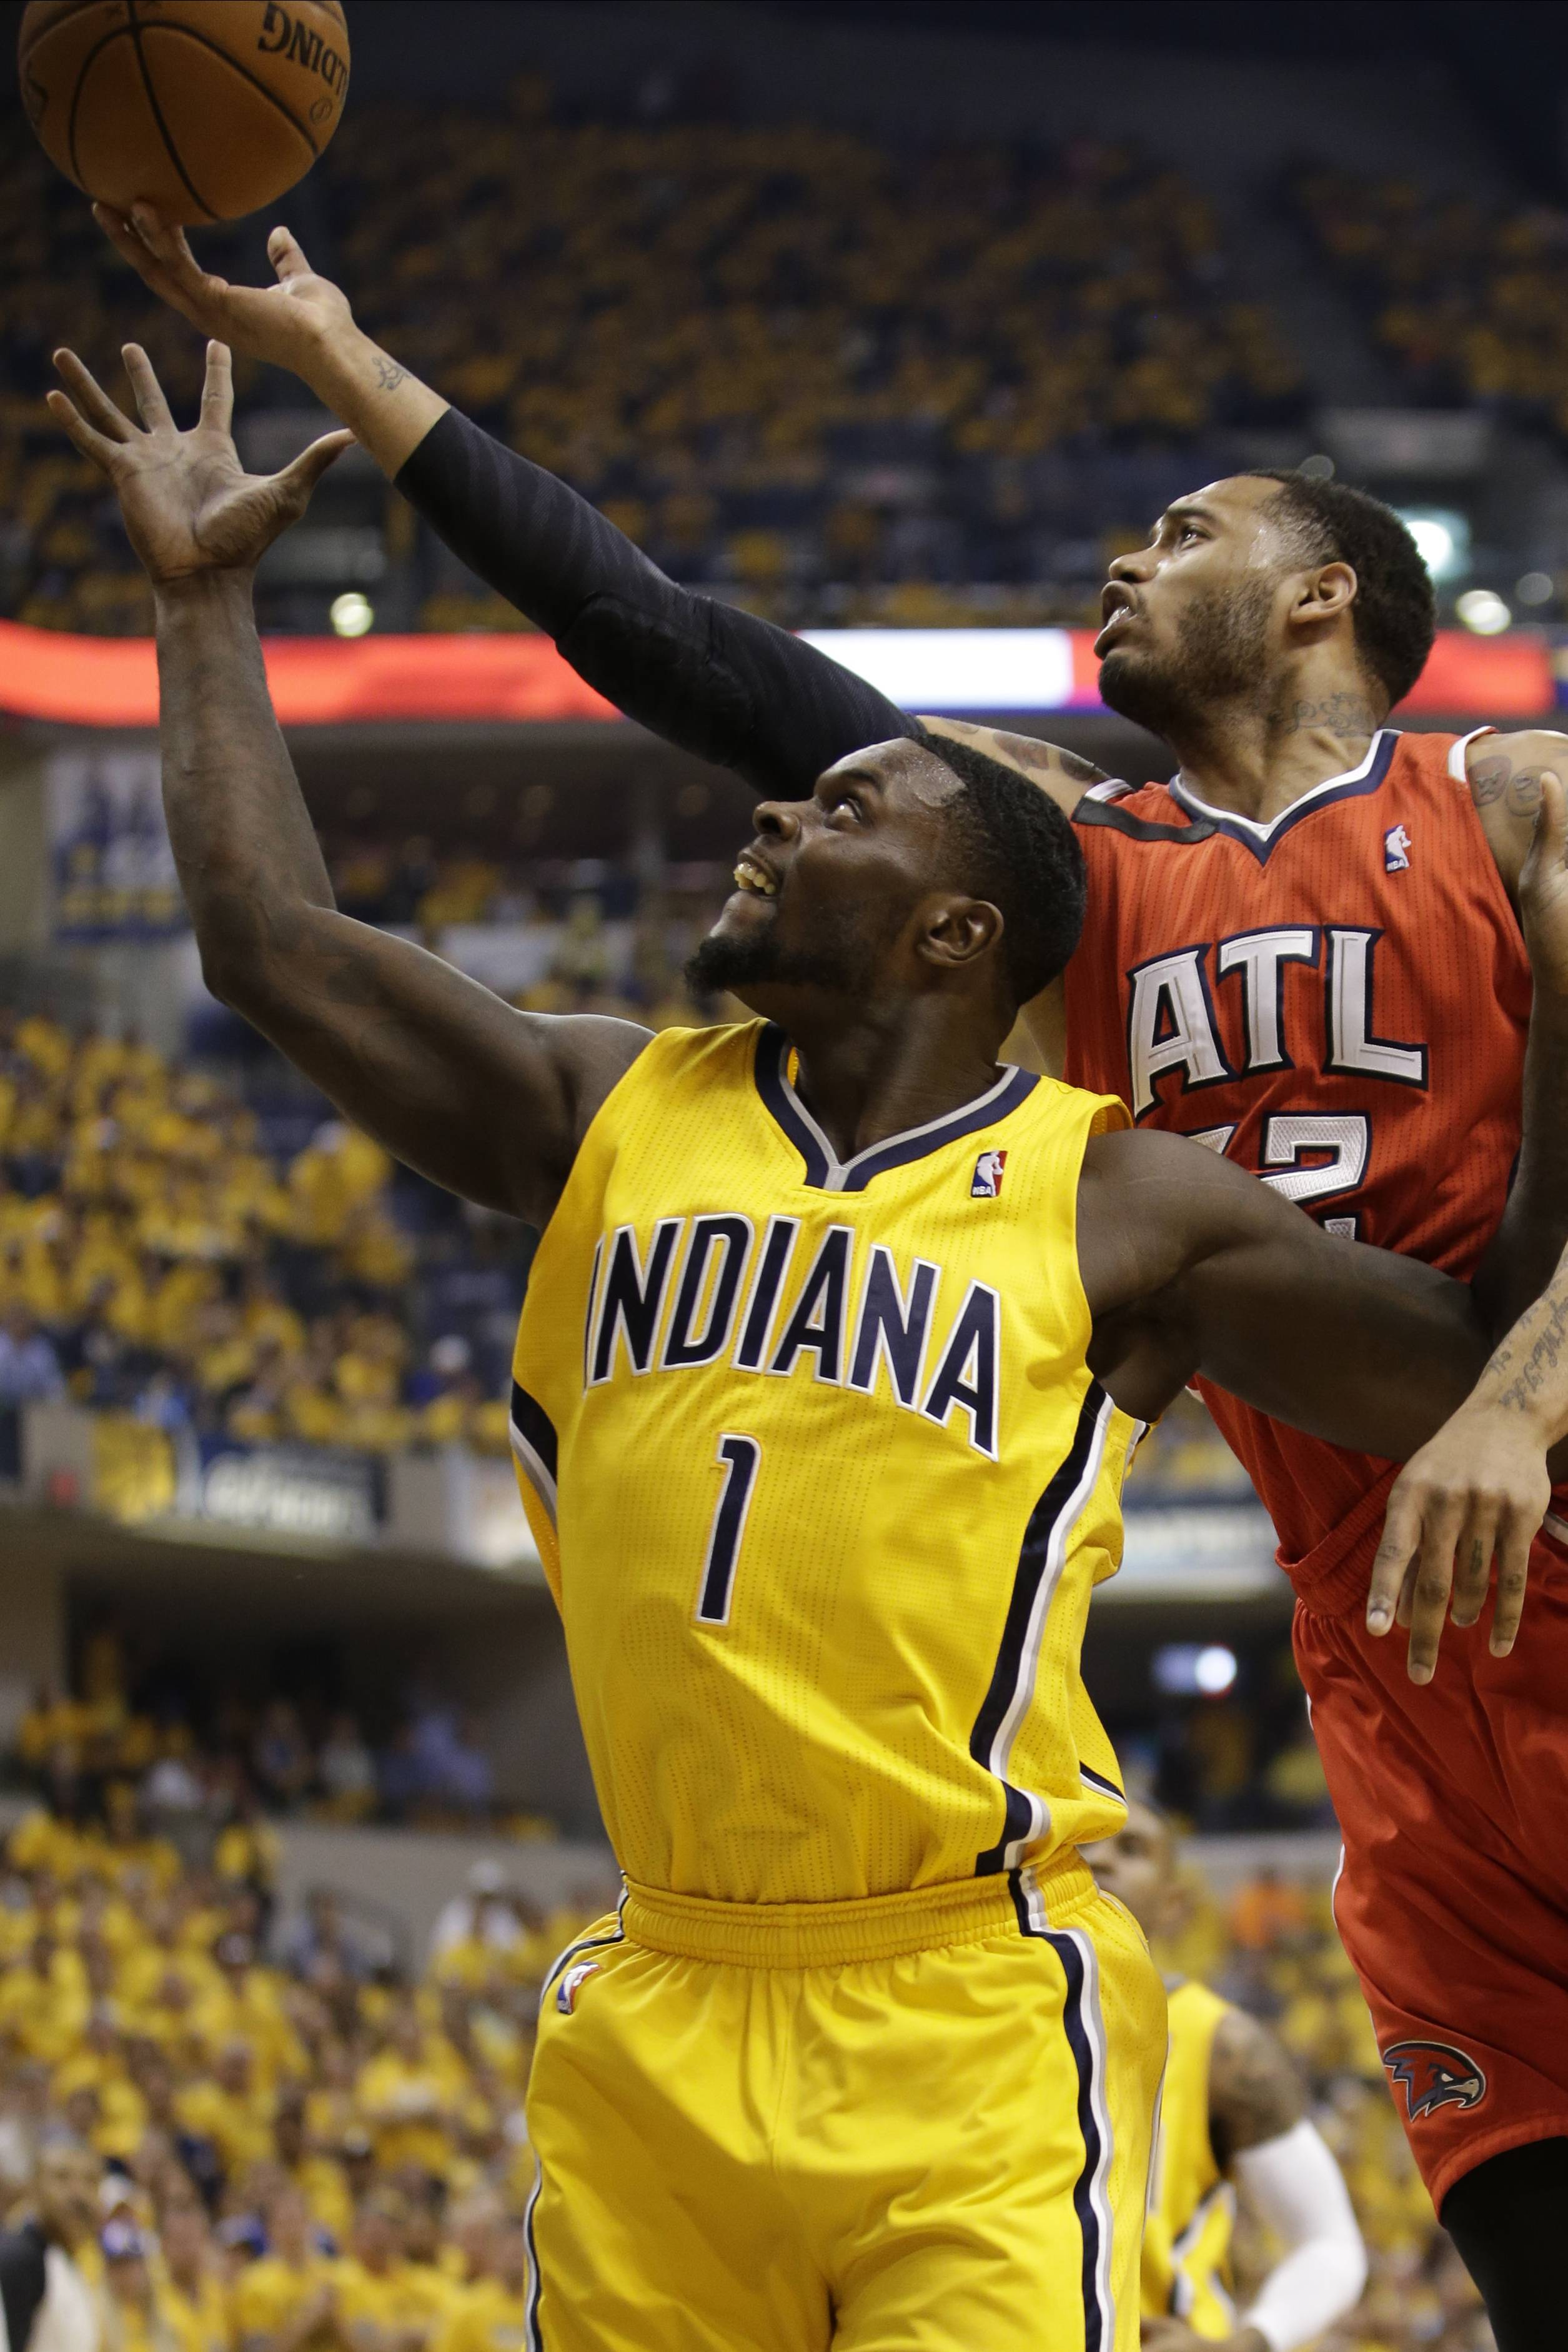 Atlanta Hawks forward Mike Scott (32) shoots over Indiana Pacers guard Lance Stephenson (1) during Game 7 of a first-round NBA basketball playoff series between the Indiana Pacers and the Atlanta Hawks Saturday in Indianapolis. The Pacers won 92-80.